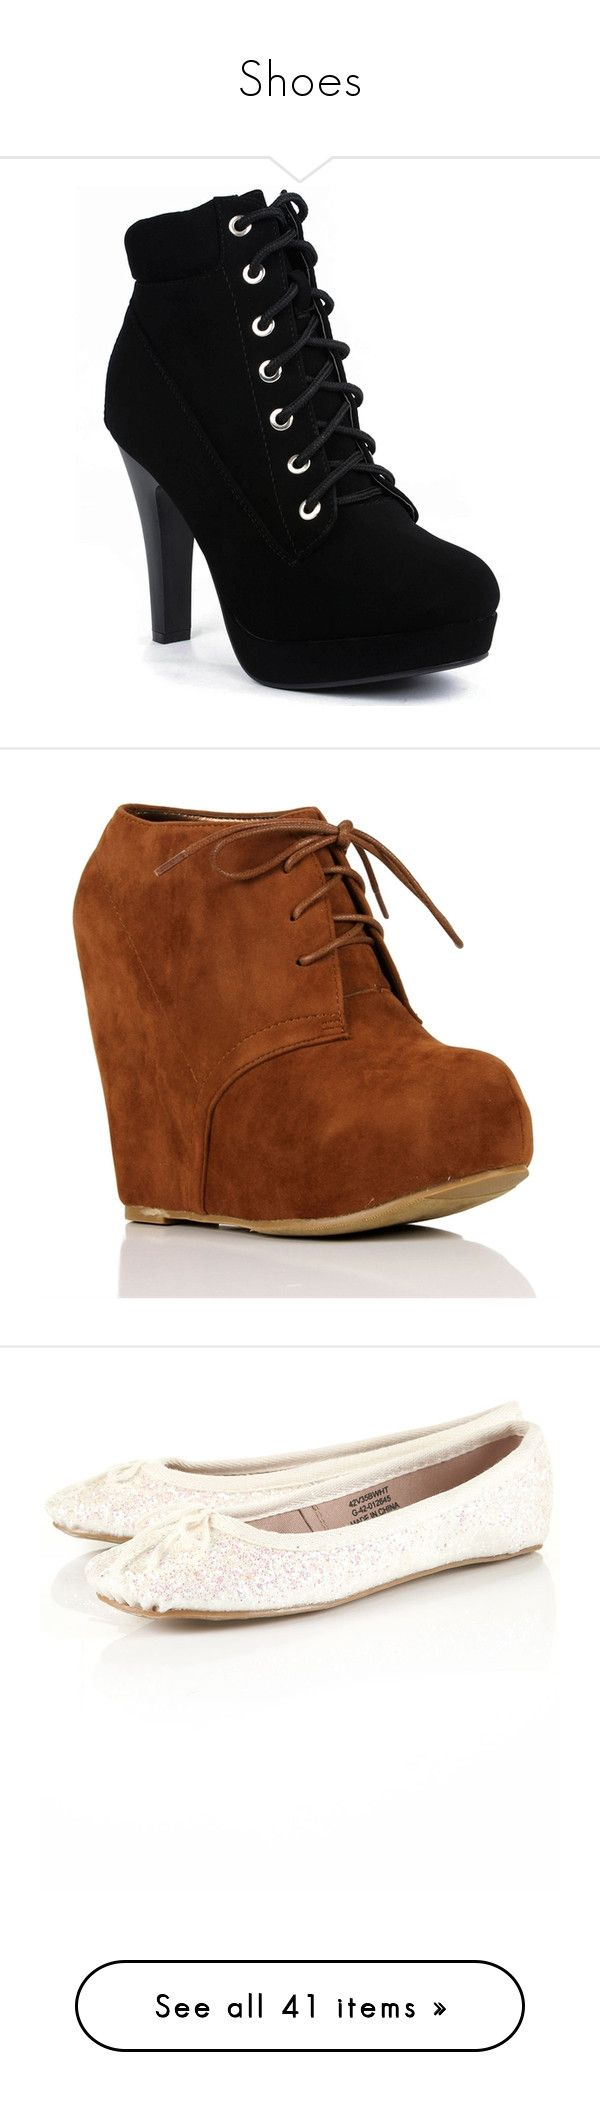 """""""Shoes"""" by ticcitobydreams ❤ liked on Polyvore featuring shoes, boots, ankle booties, heels, sapatos, lace up ankle boots, high heel boots, lace up booties, lace up heel booties and lace up high heel booties"""